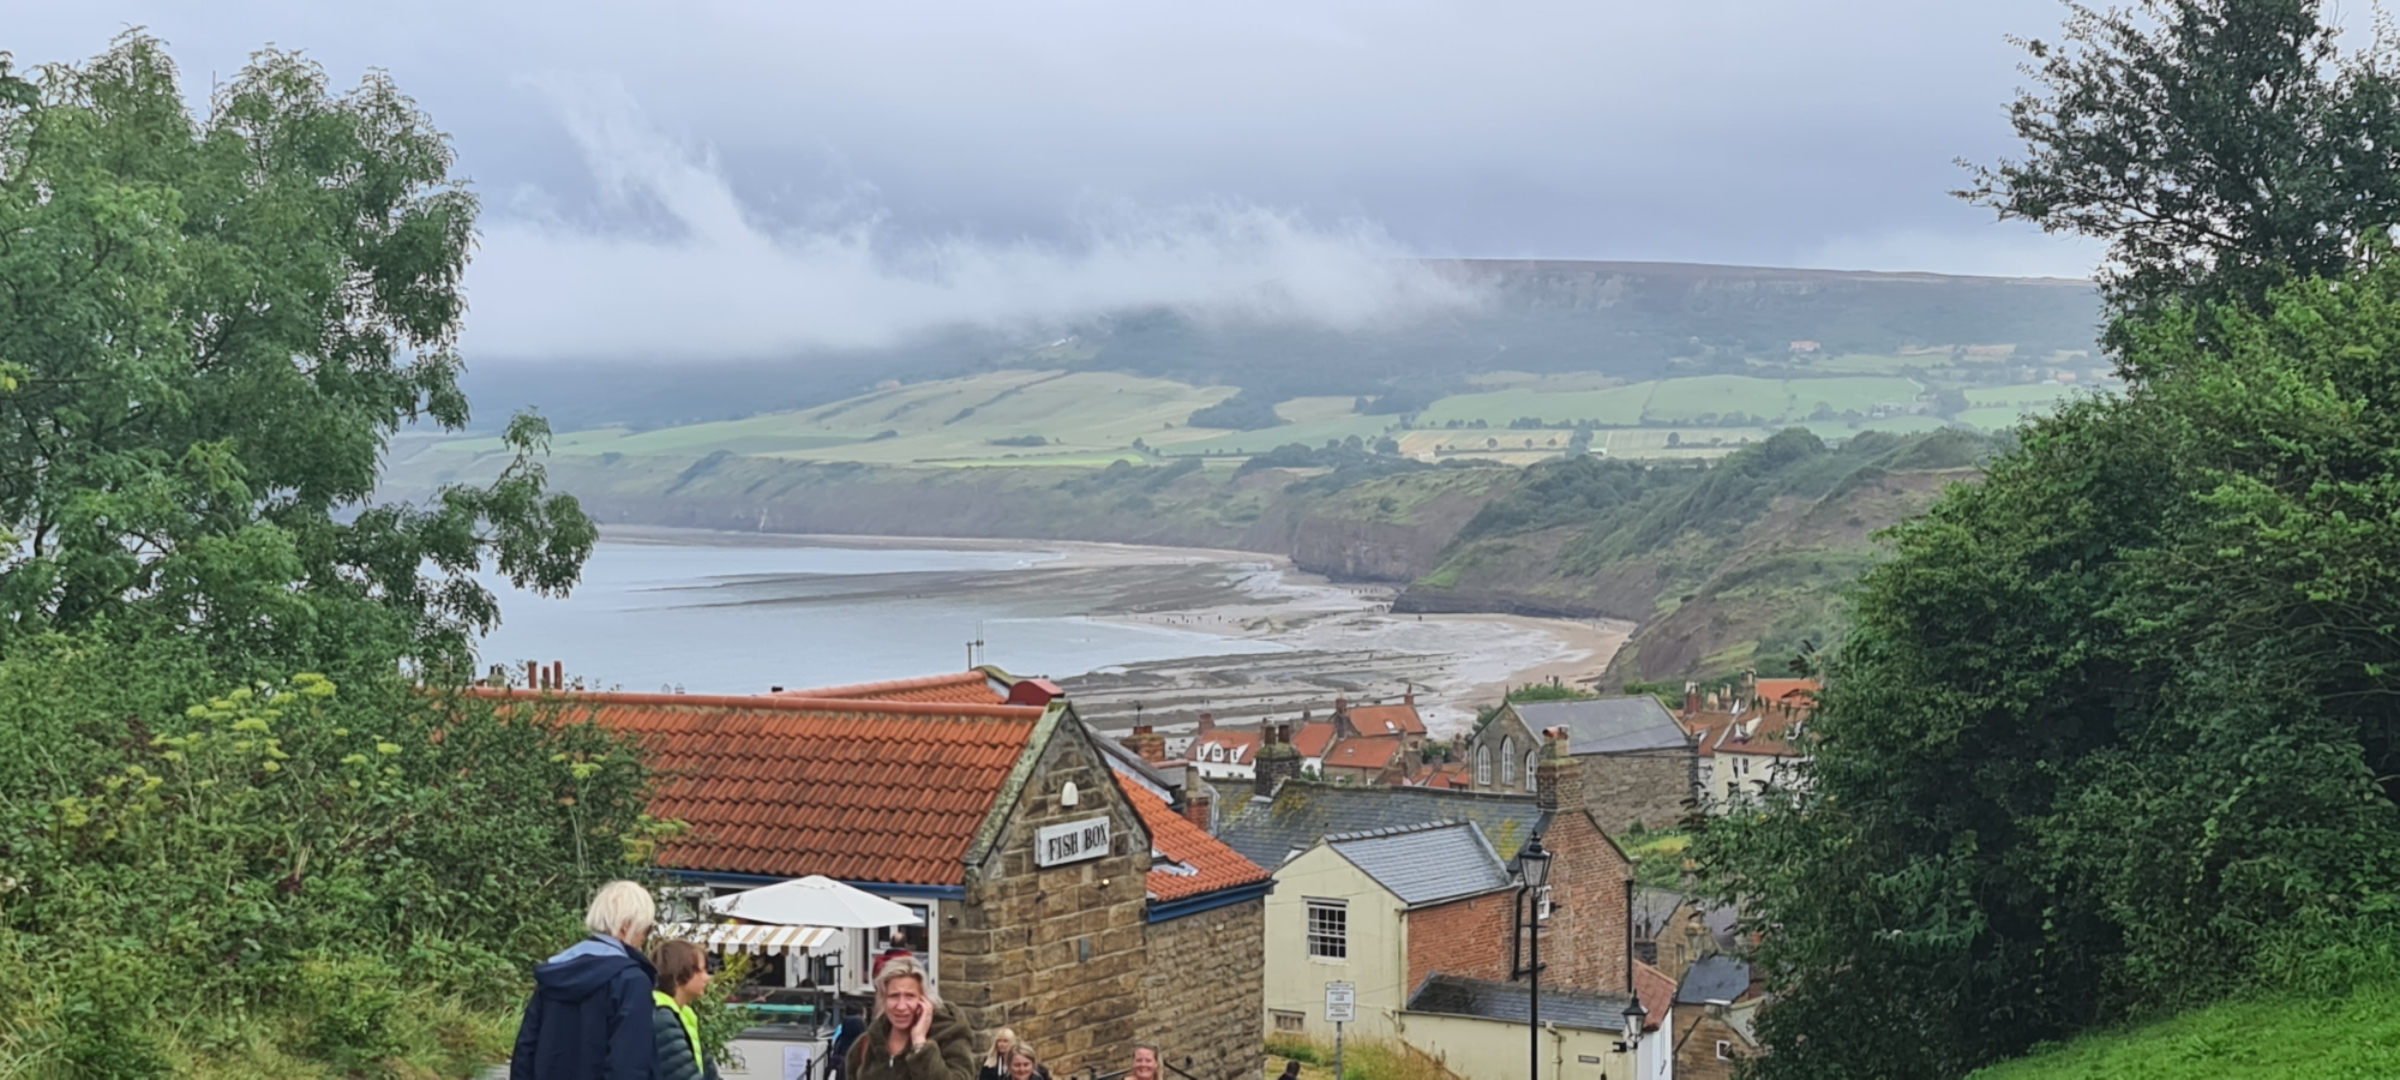 "Newcastle to Robin Hood's Bay by Local bus!? ""Travel With MD"".           #MdsTravelBlog"